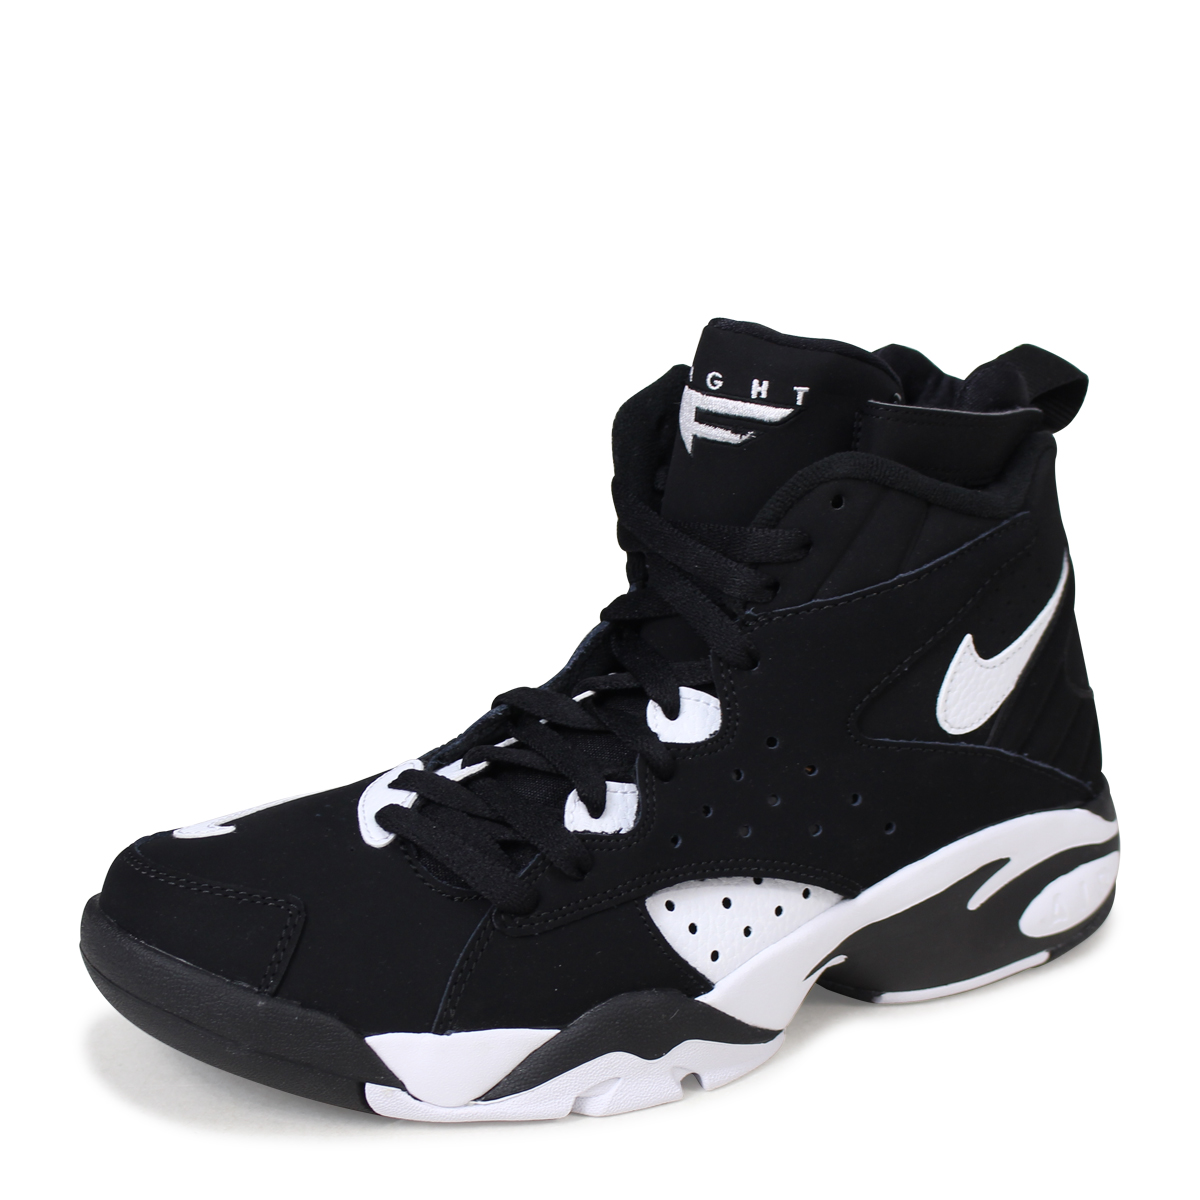 reputable site a4a28 c00d0 NIKE AIR MAESTRO II LTD Nike air maestro 2 sneakers men AH8511-001 black   load planned Shinnyu load in reservation product 5 19 containing   185